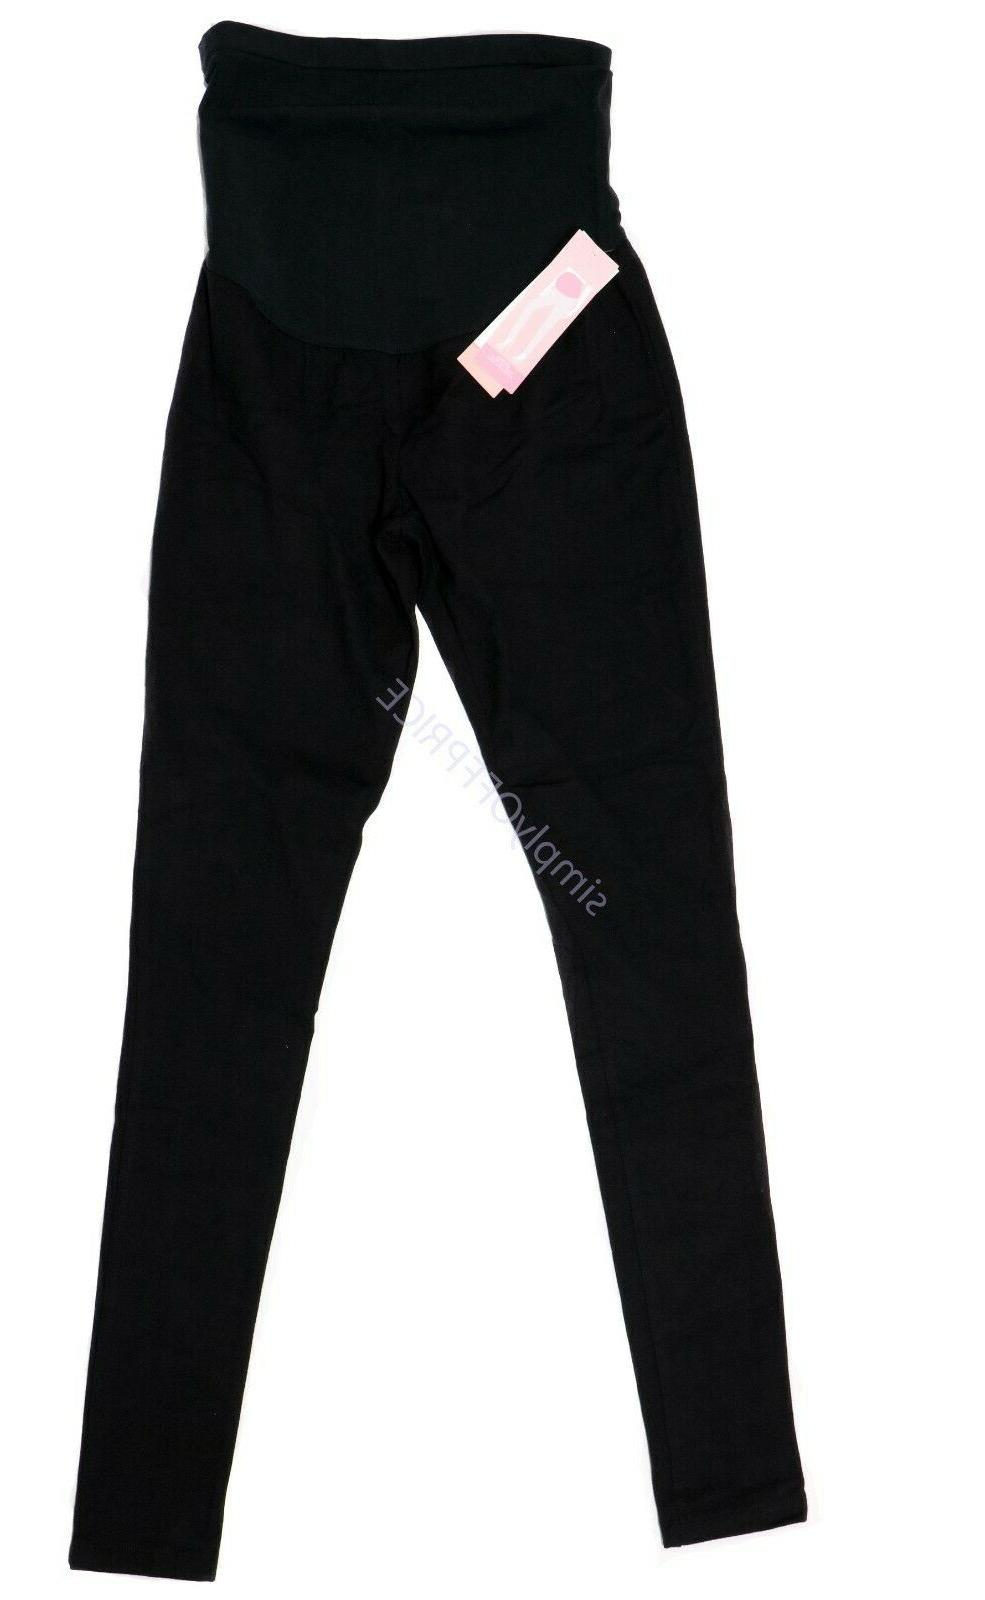 new maternity clothes leggings black over belly